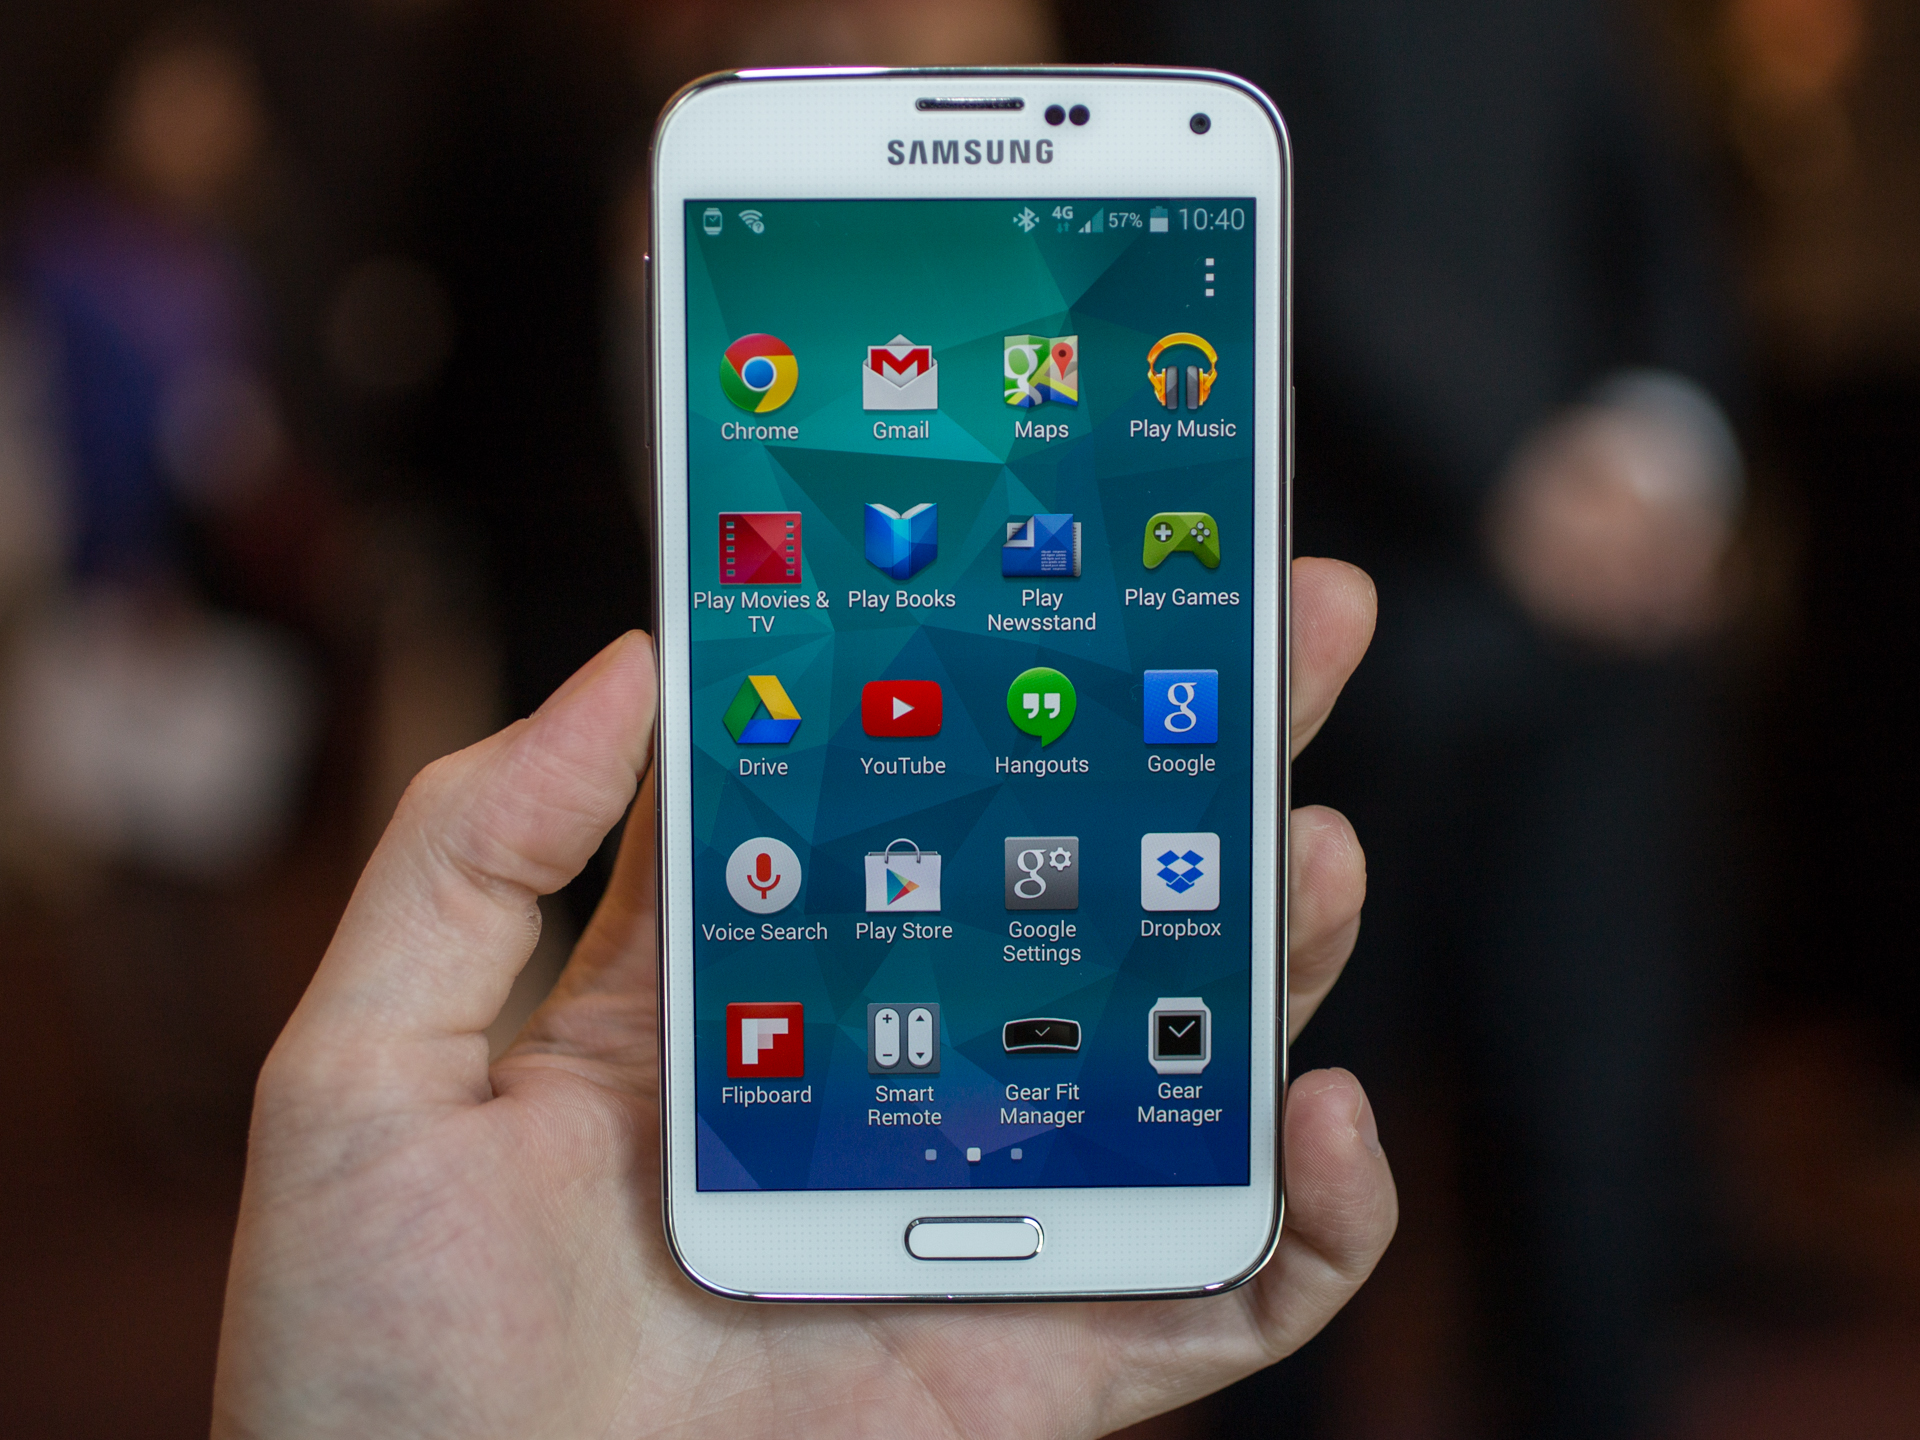 Samsung Galaxy S5 is the Most Fun and Colorful Experience You Can Have On Android